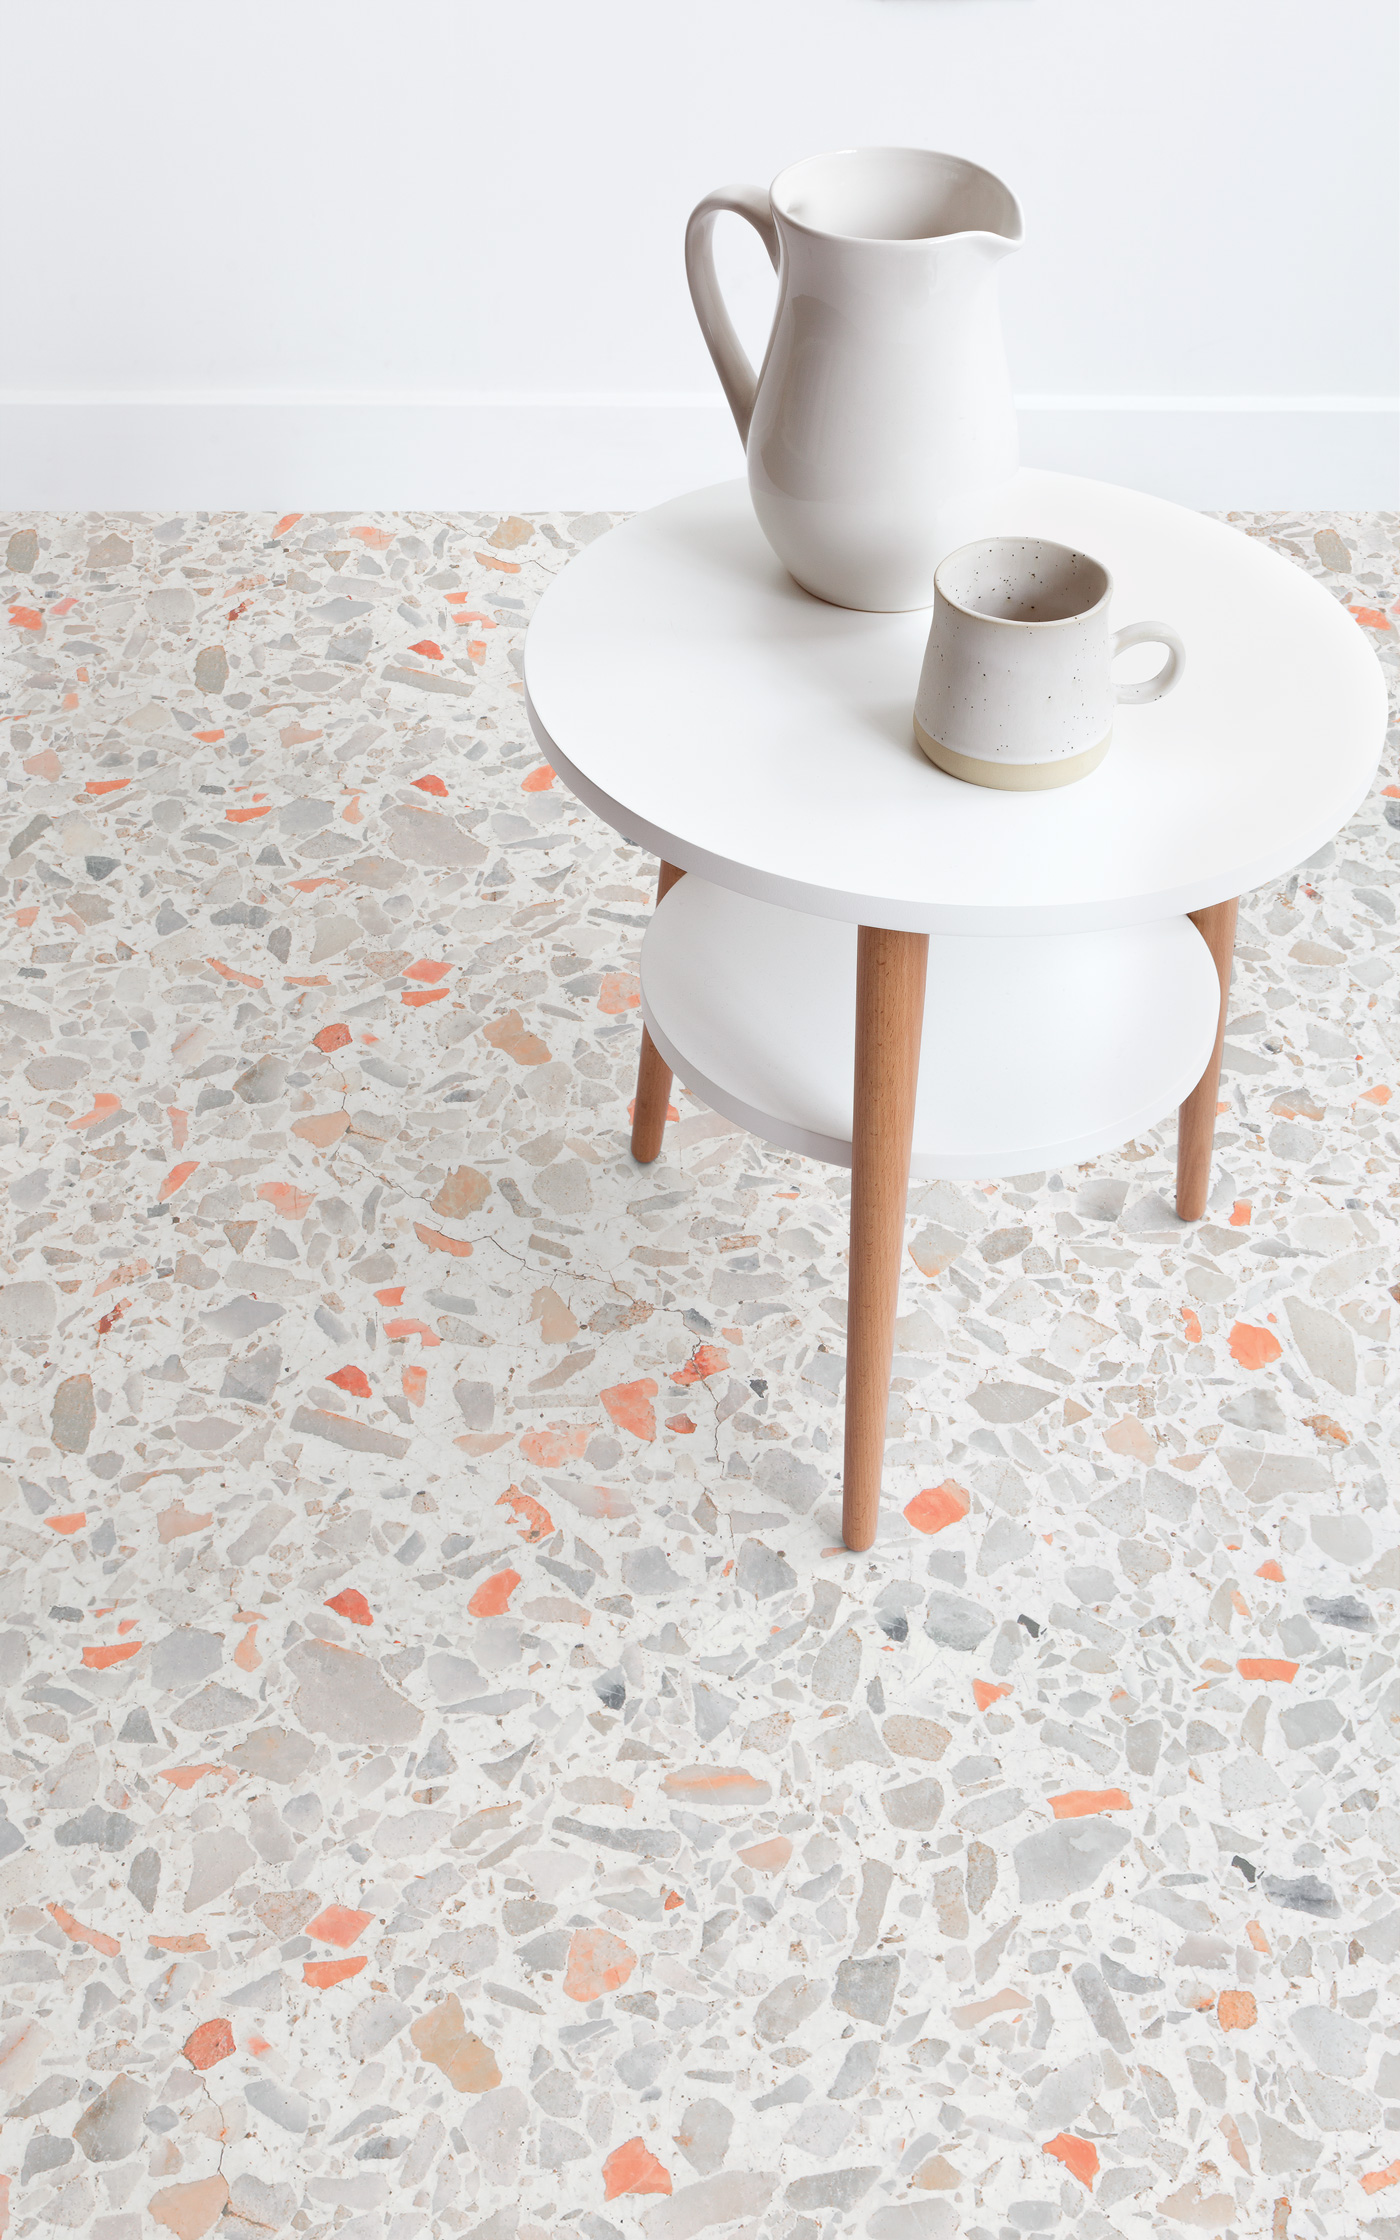 Orange-Flicks-Terrazzo-Lifestyle-web.jpg